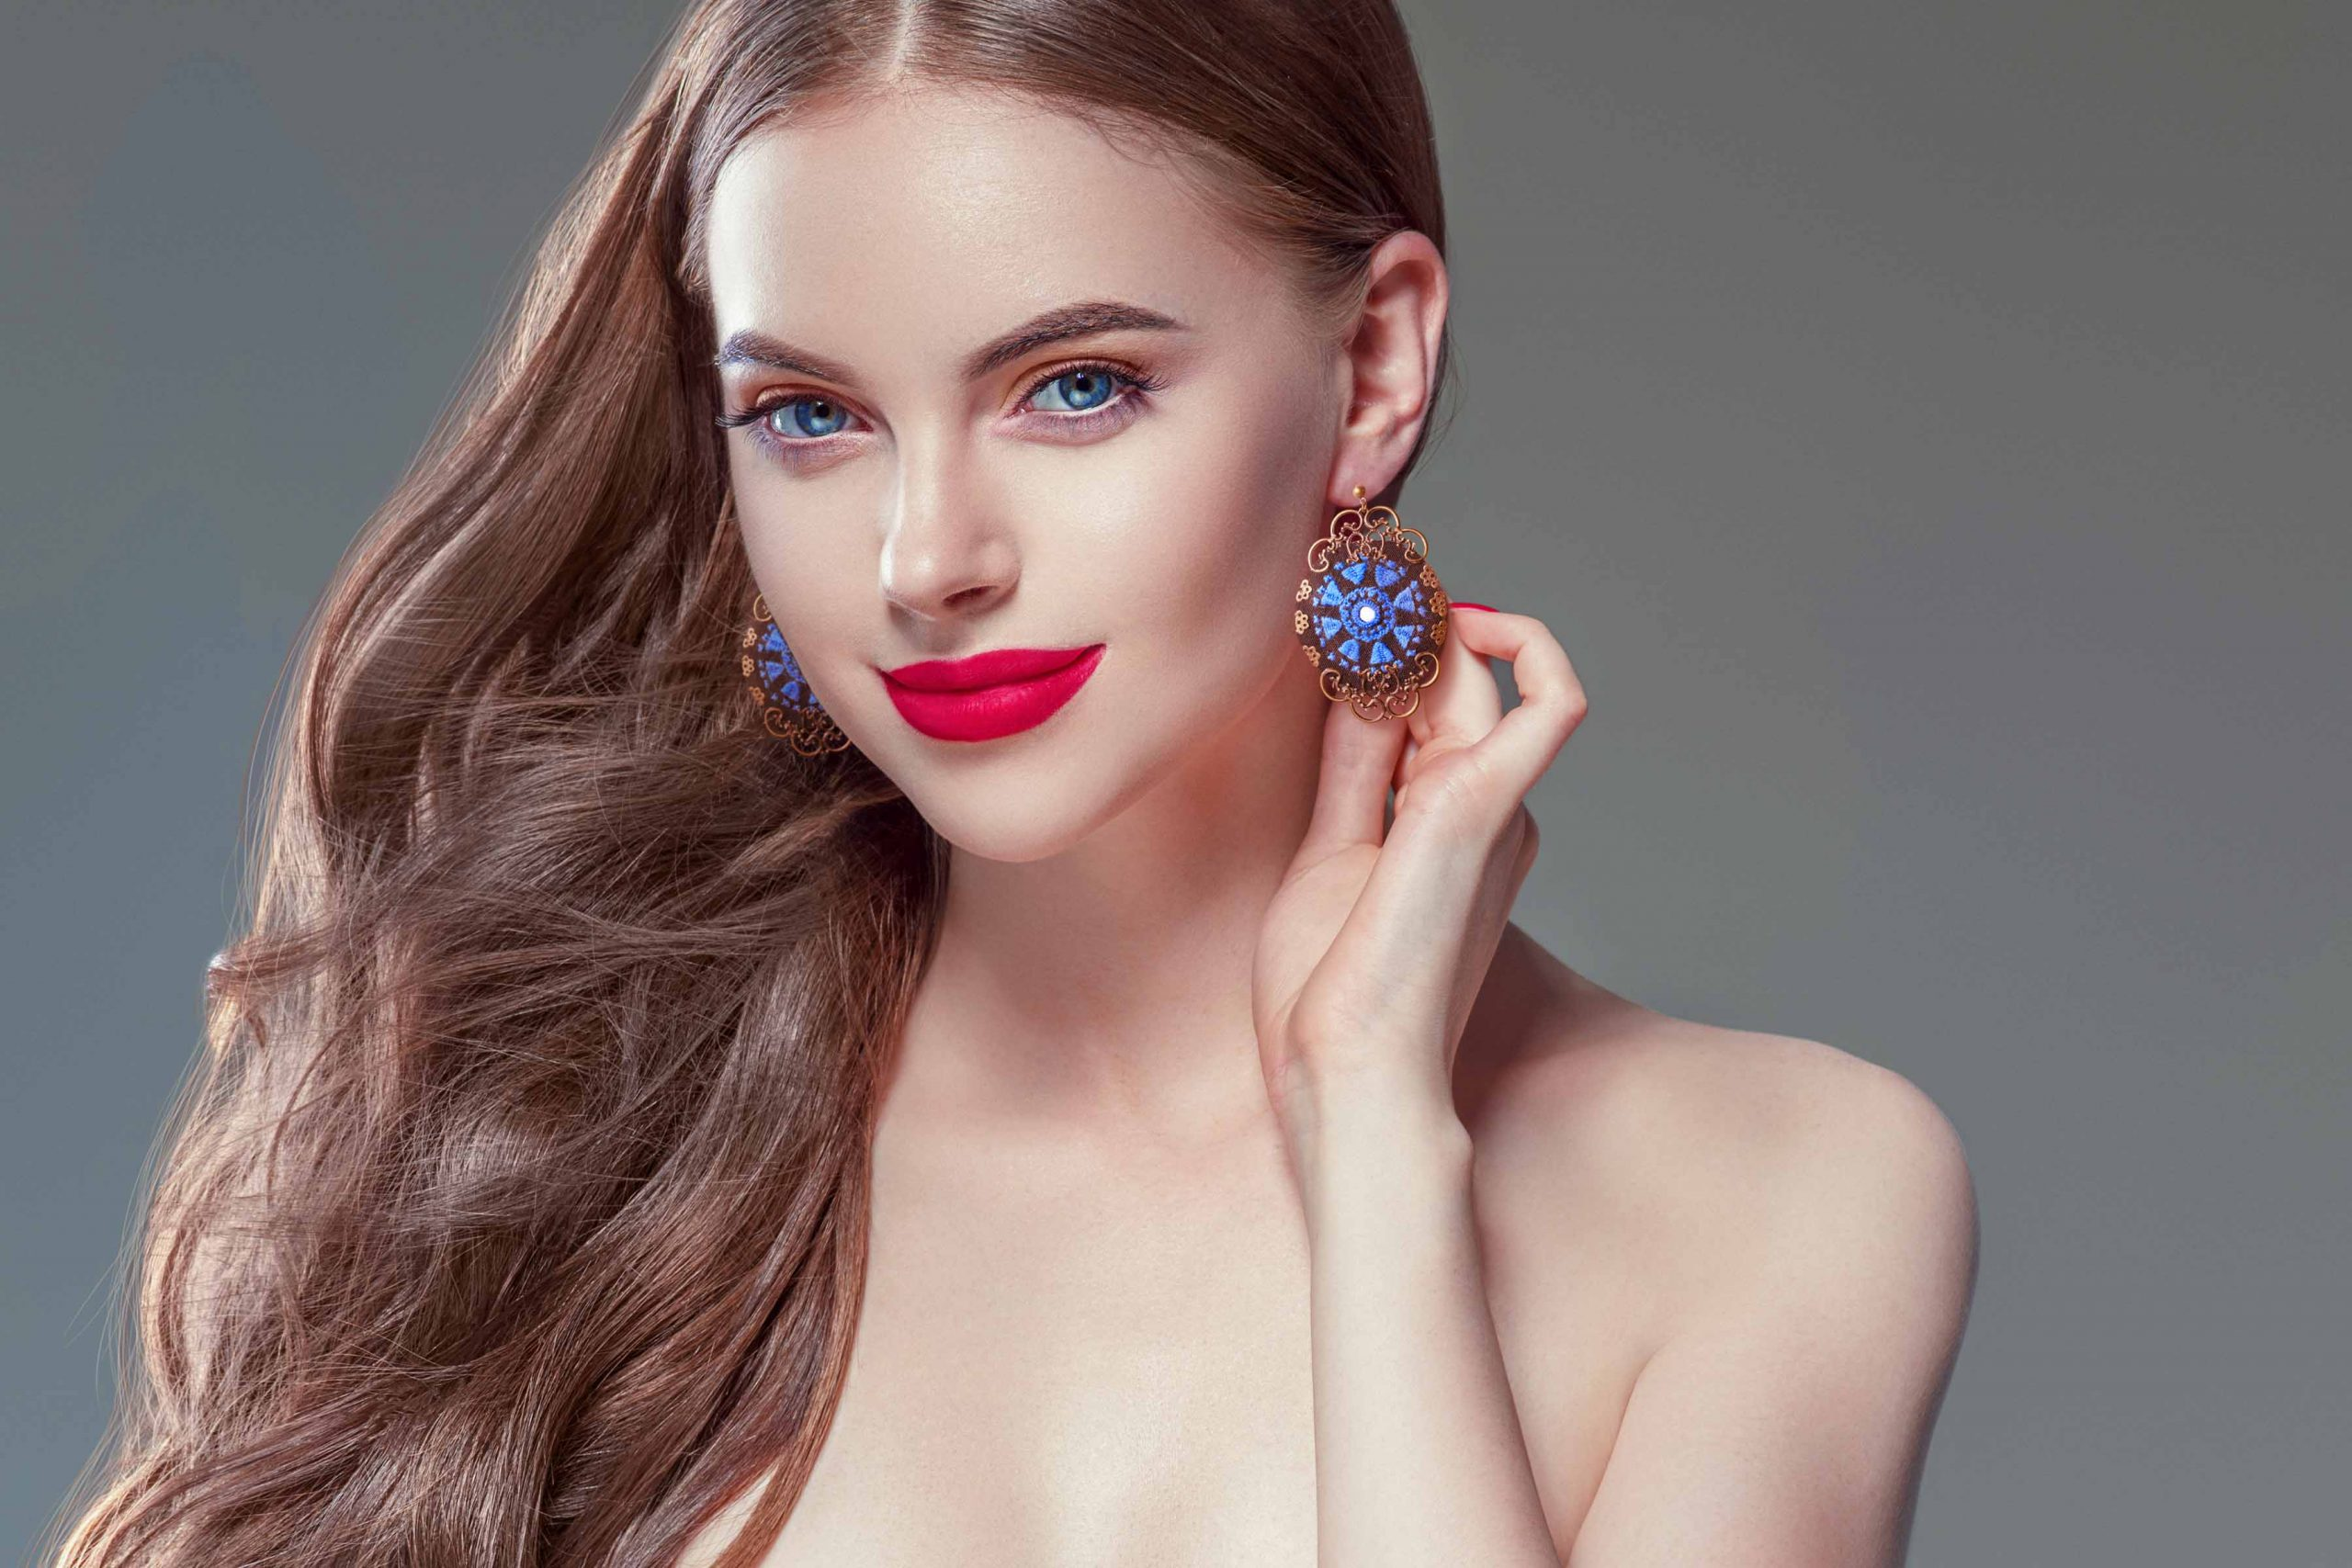 Persian Balochi Embroidery Earring, Floral Blue Pattern With Circular Shape Is Decorated With Tiny Mirror In The Centre